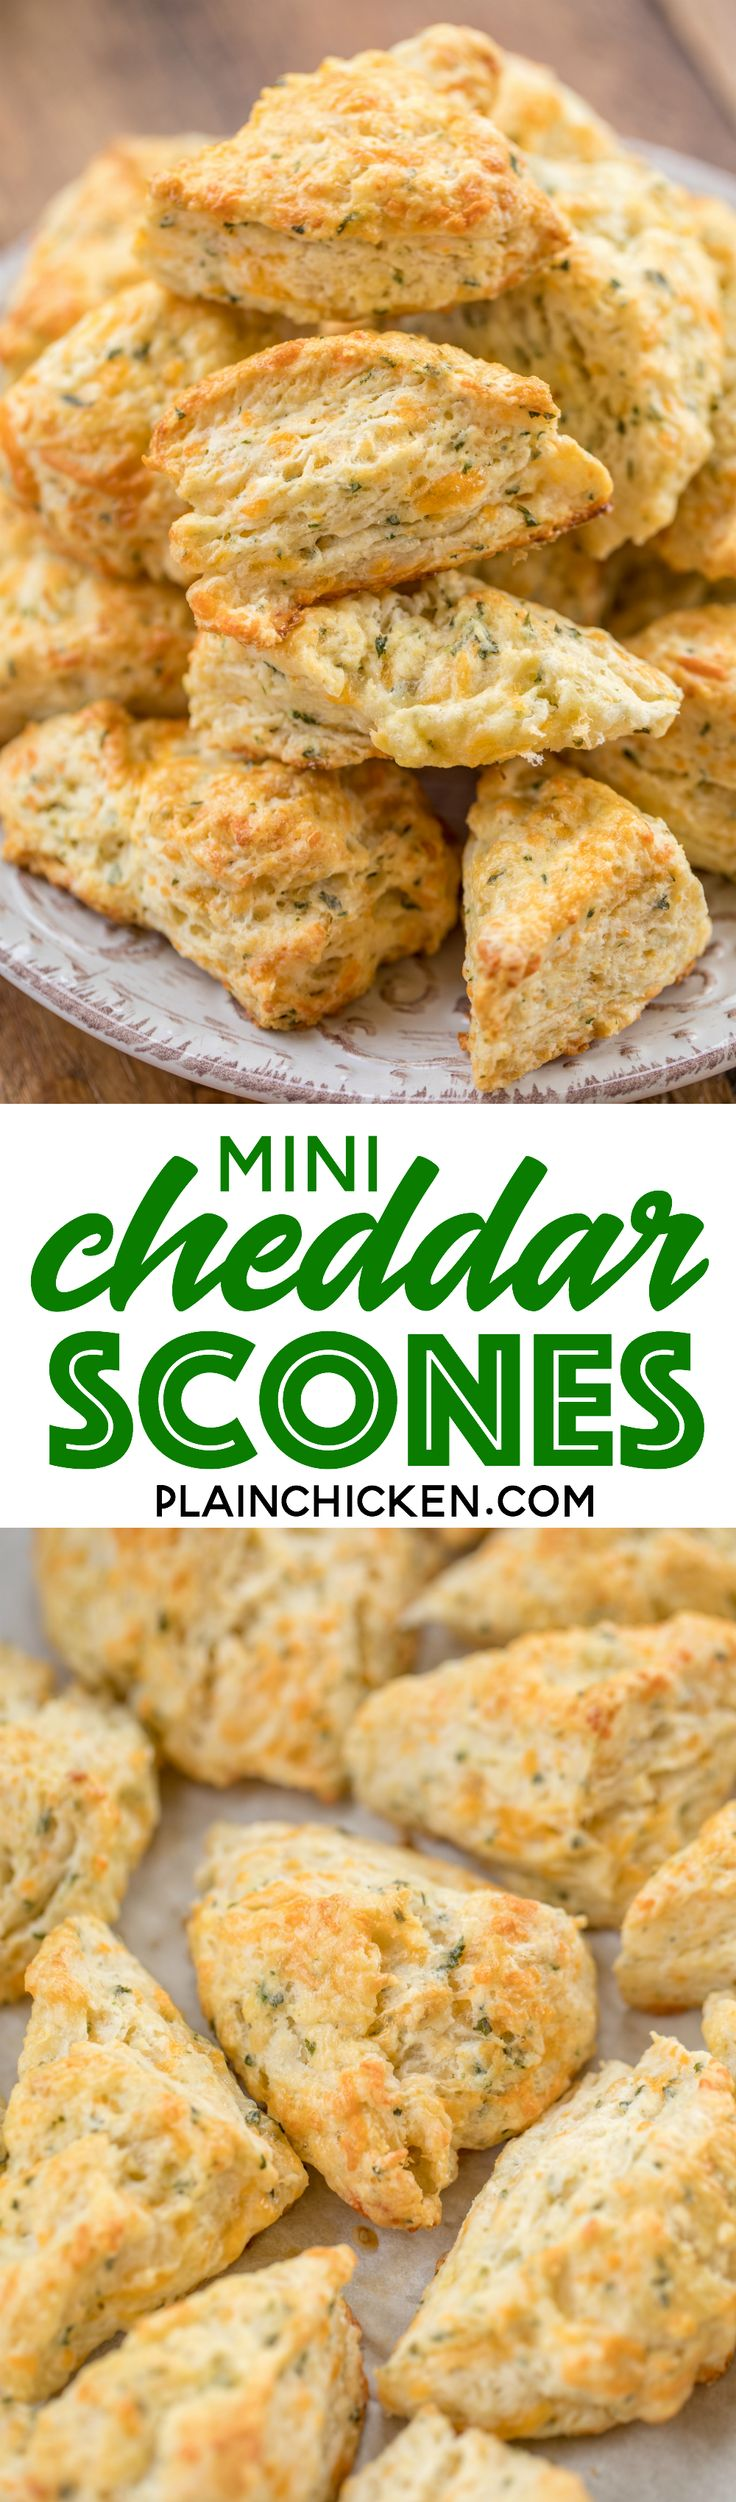 Mini Cheddar Scones - CRAZY good! They go with everything - soups, stews, casseroles, grilled meats. We make these yummy biscuits every week! Flour, baking soda, baking powder, salt, butter, cheese, and buttermilk. Surprisingly easy to make!